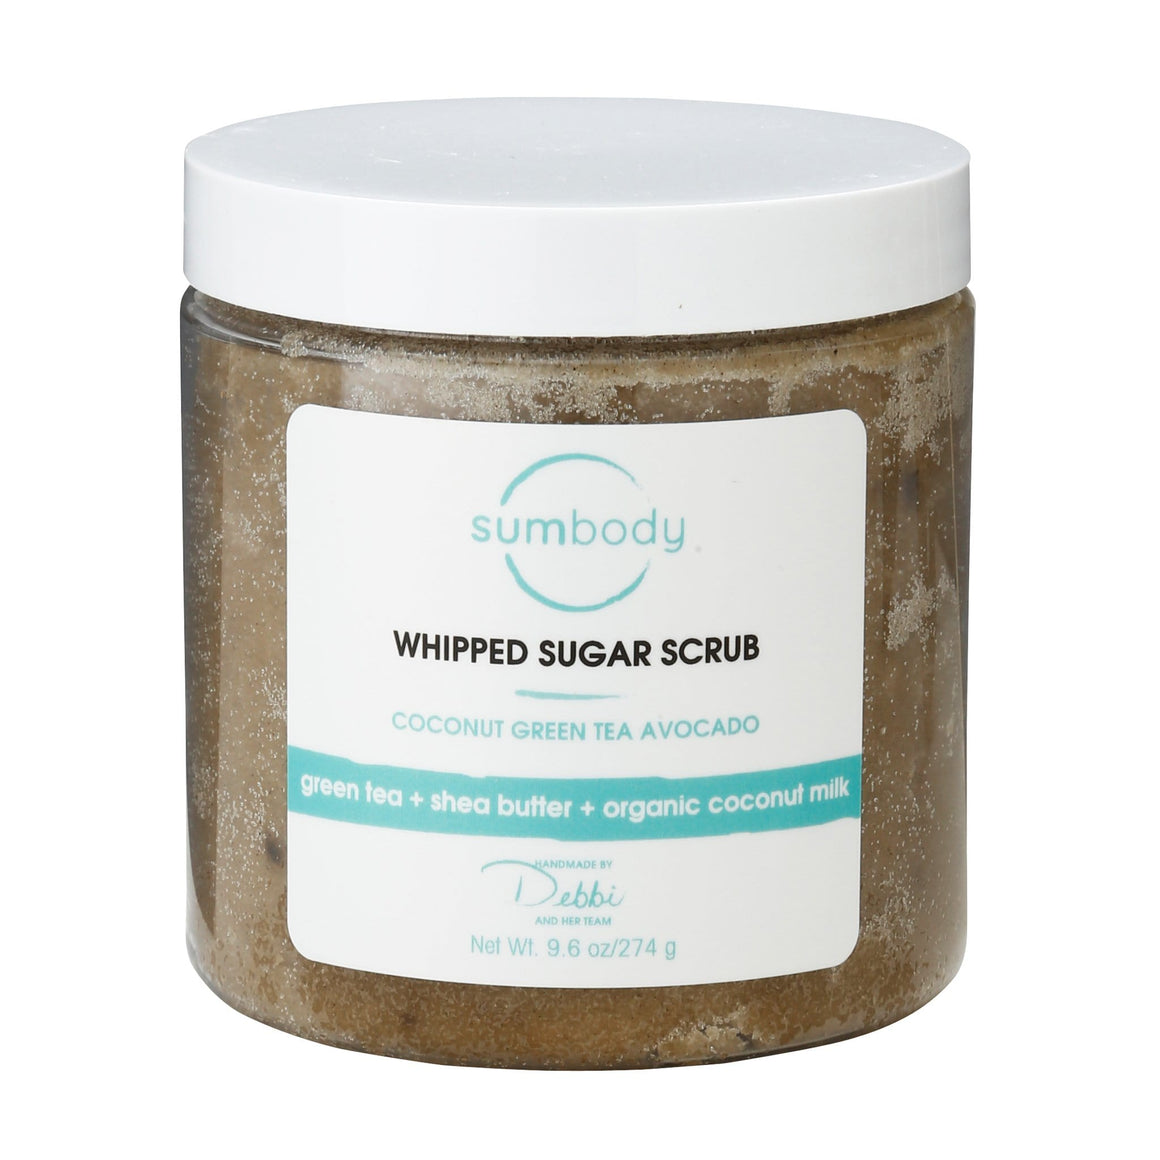 Coconut, Green Tea, Avocado Whipped Sugar Scrub